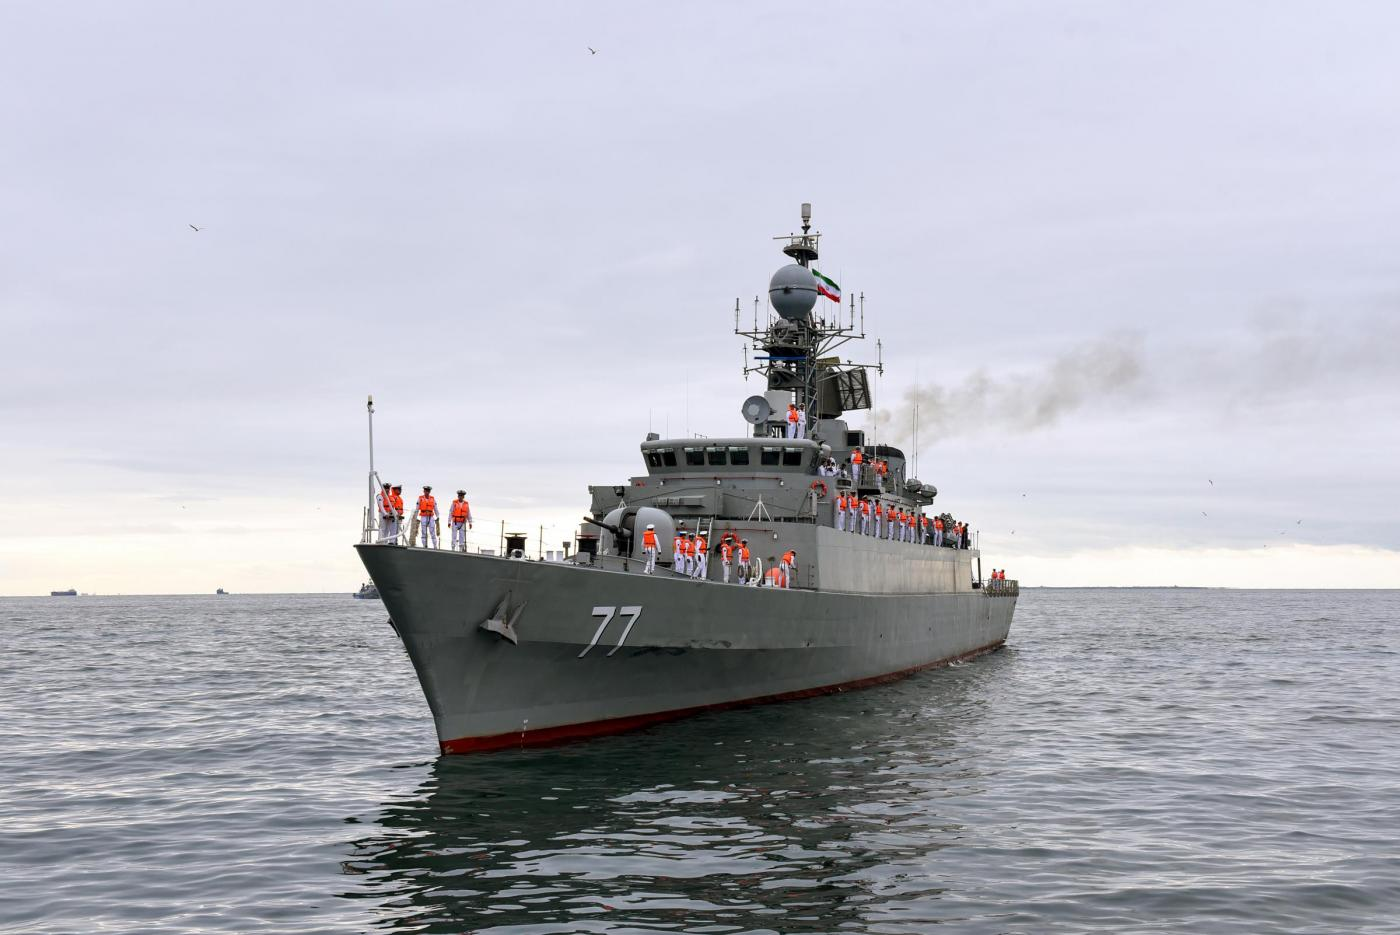 """Two warships of the Naval Forces of Iran arrived in Azerbaijan.Missile """"Damavand"""" and boat """"Dzhovshan"""" embarked on a raid in the Baku Bay. The military orchestra of Azerbaijan held official welcoming ceremony. This is the first visit of Iranian military ships in our country after the proclamation of independence of Azerbaijan."""